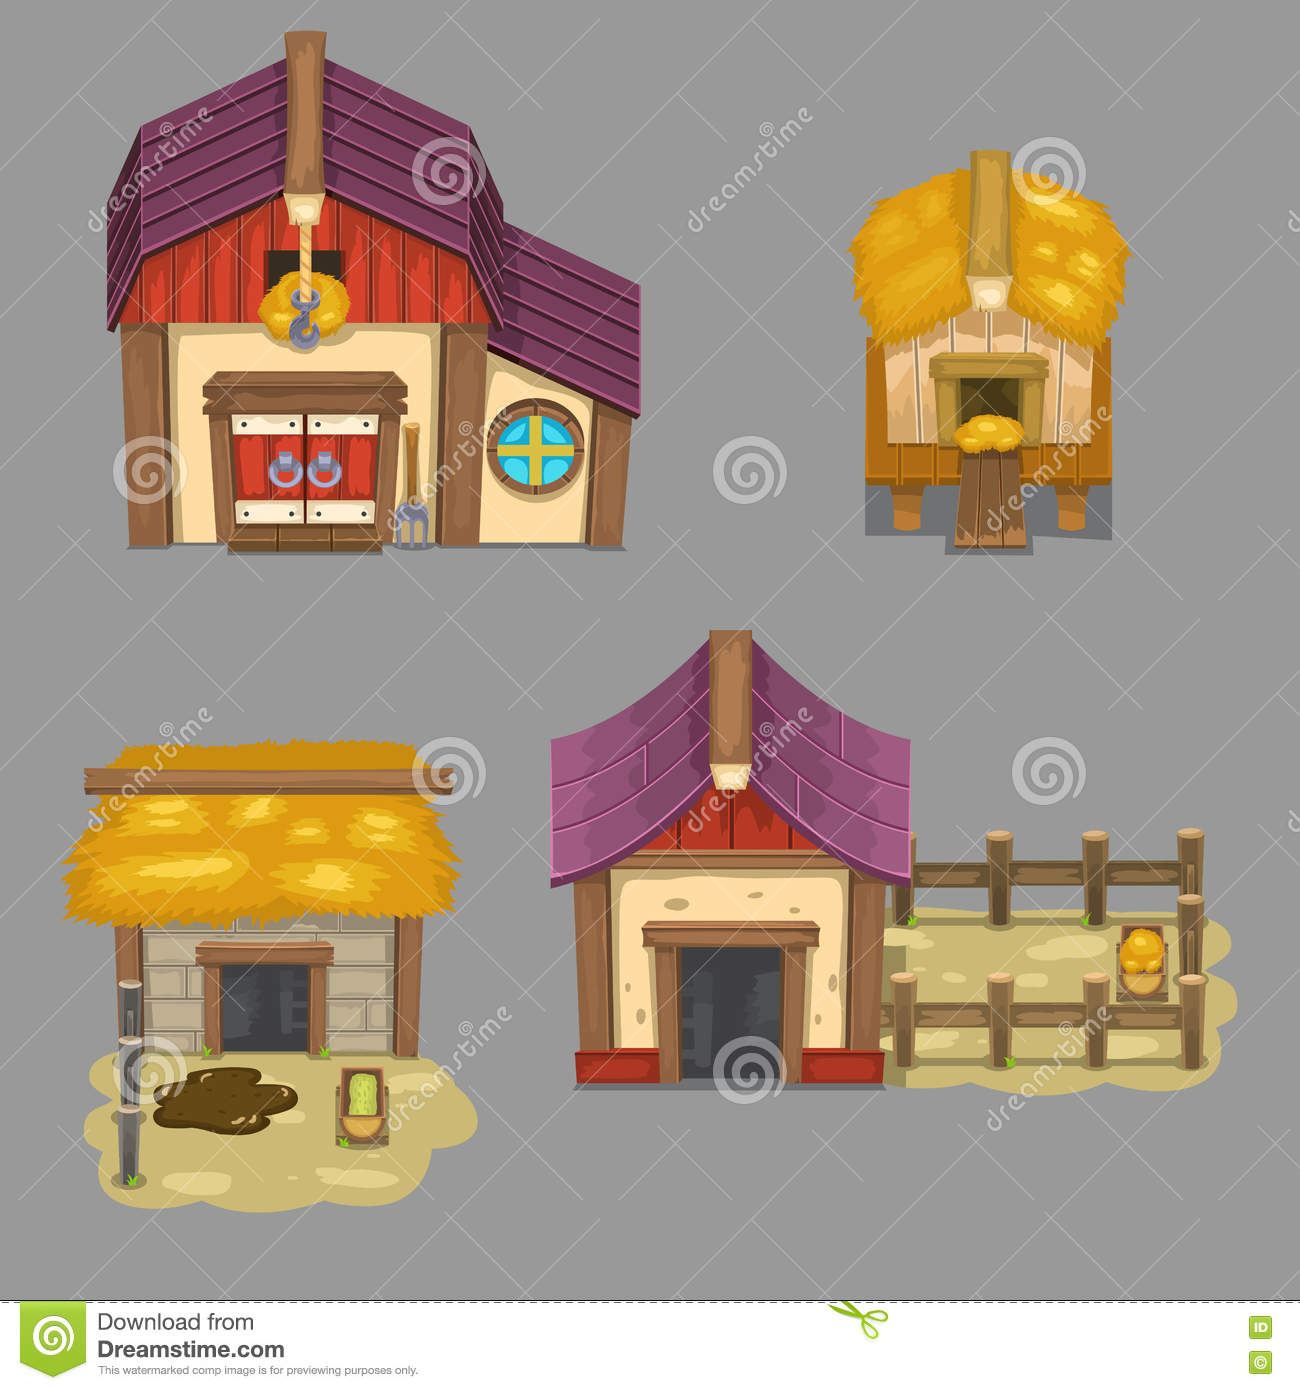 create your dream house game best gotify create your own